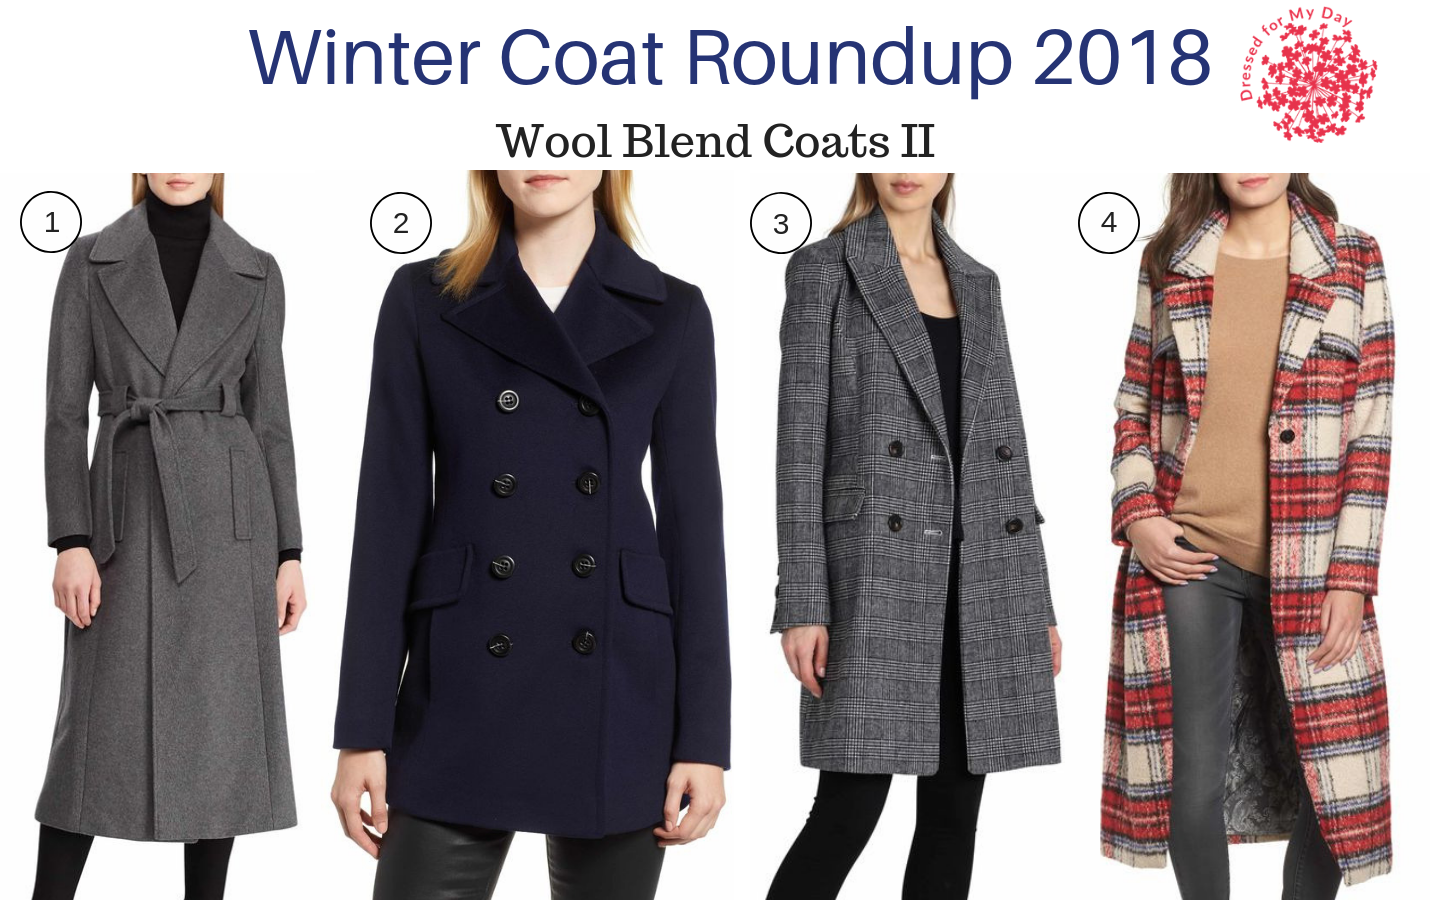 Winter Coat Roundup 2018 Wool Blend Coats II